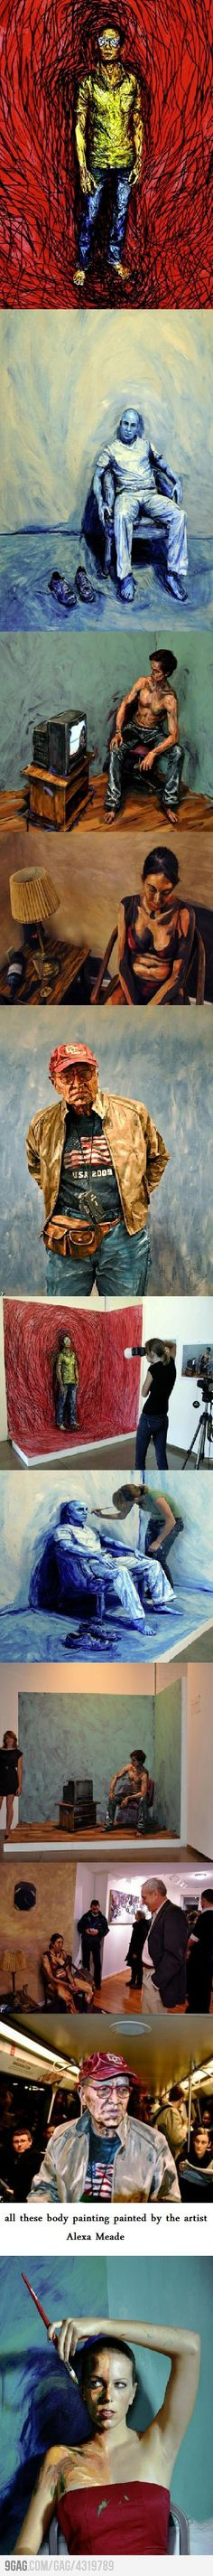 Incredible Art by Alexa Meade who uses her subjects as the actual canvas, check out her website @ alexameade.com